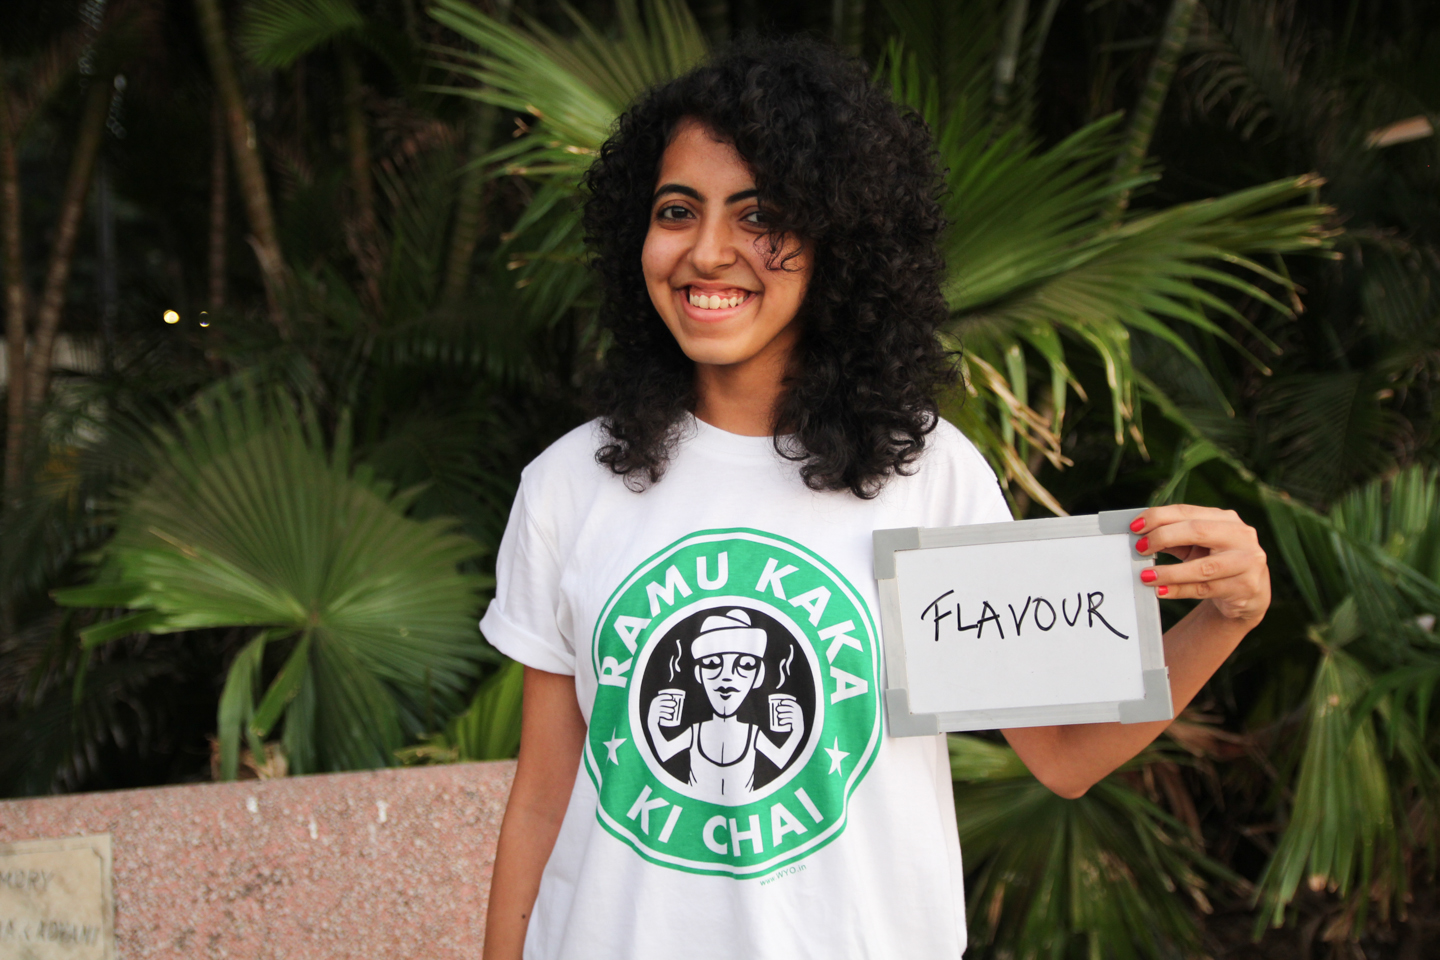 Abhishta, a student of commerce at Mumbai's H.R. College, sports a Ramu Kaka Ki Chai t-shirt designed by Rajveen Khandelwal and Gaurav Agarwal.